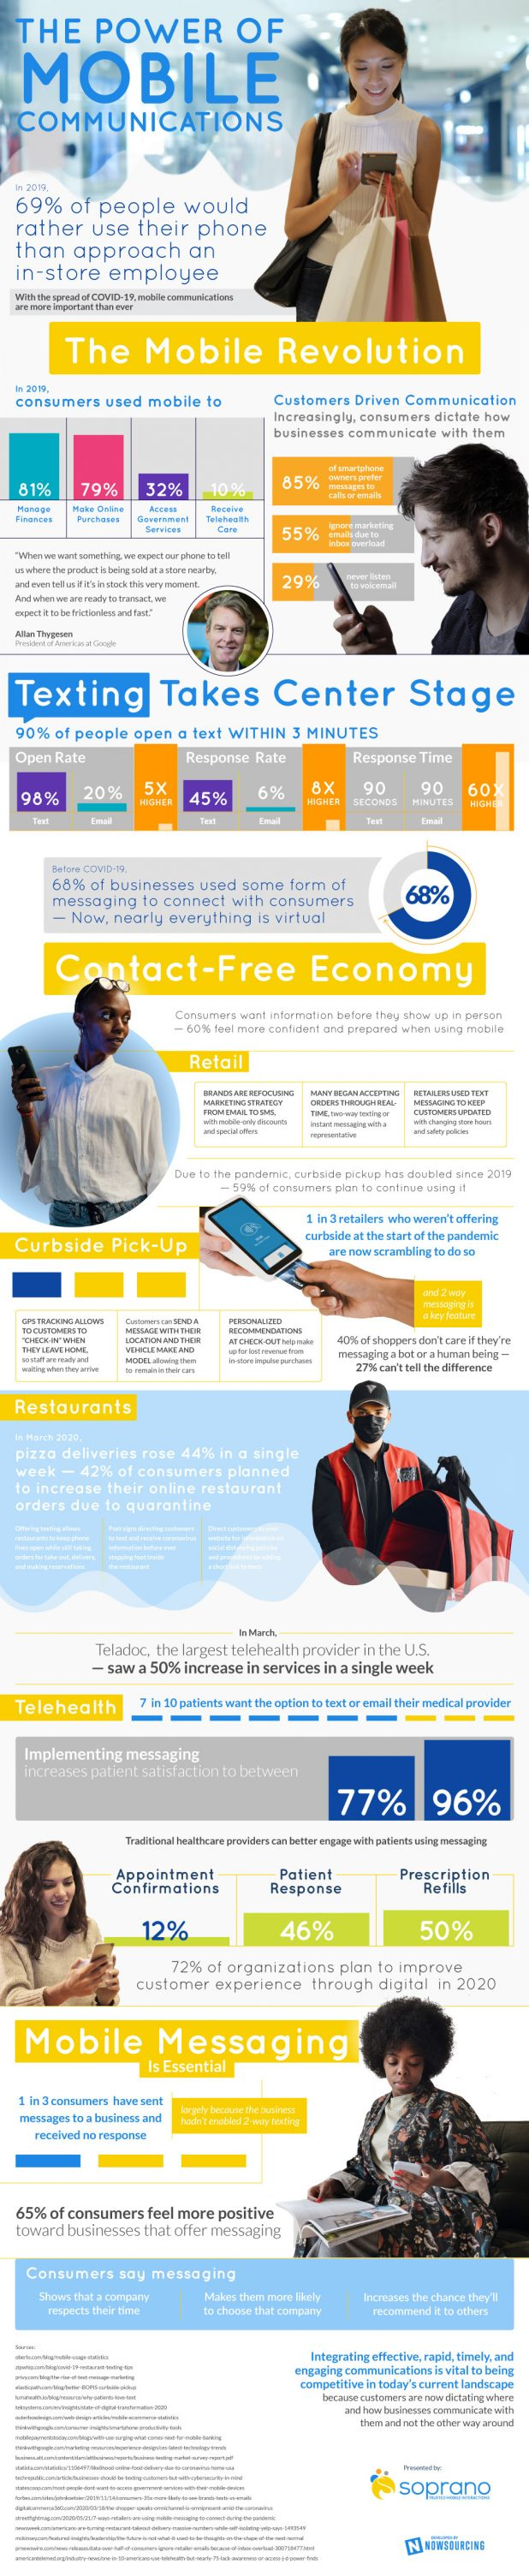 Digital Marketing: The Benefits of Mobile Messages You Need to Know [Infographic]